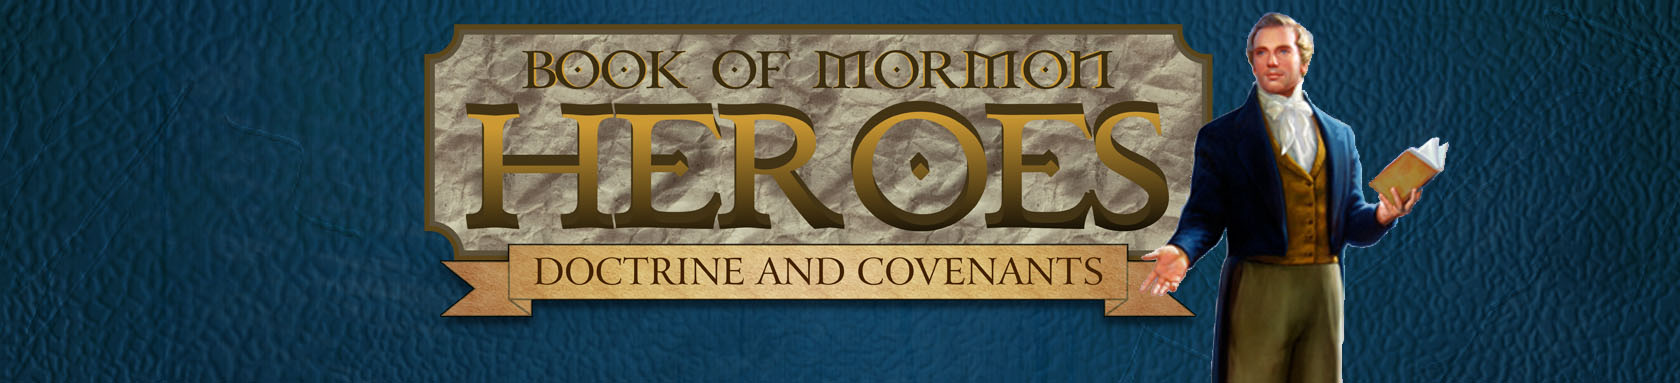 Book of Mormon Heroes Doctrine and Covenants